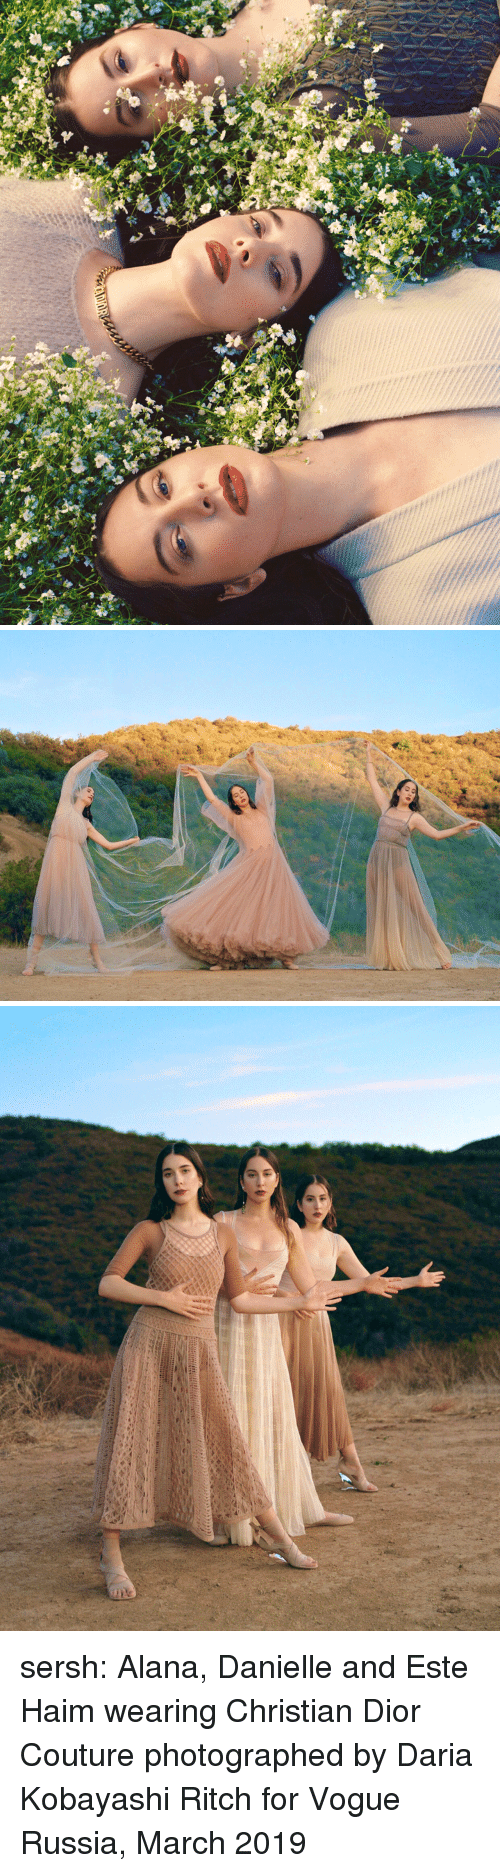 Tumblr, Blog, and Russia: sersh: Alana, Danielle and Este Haim wearing Christian Dior Couturephotographed by Daria Kobayashi Ritch for Vogue Russia, March 2019